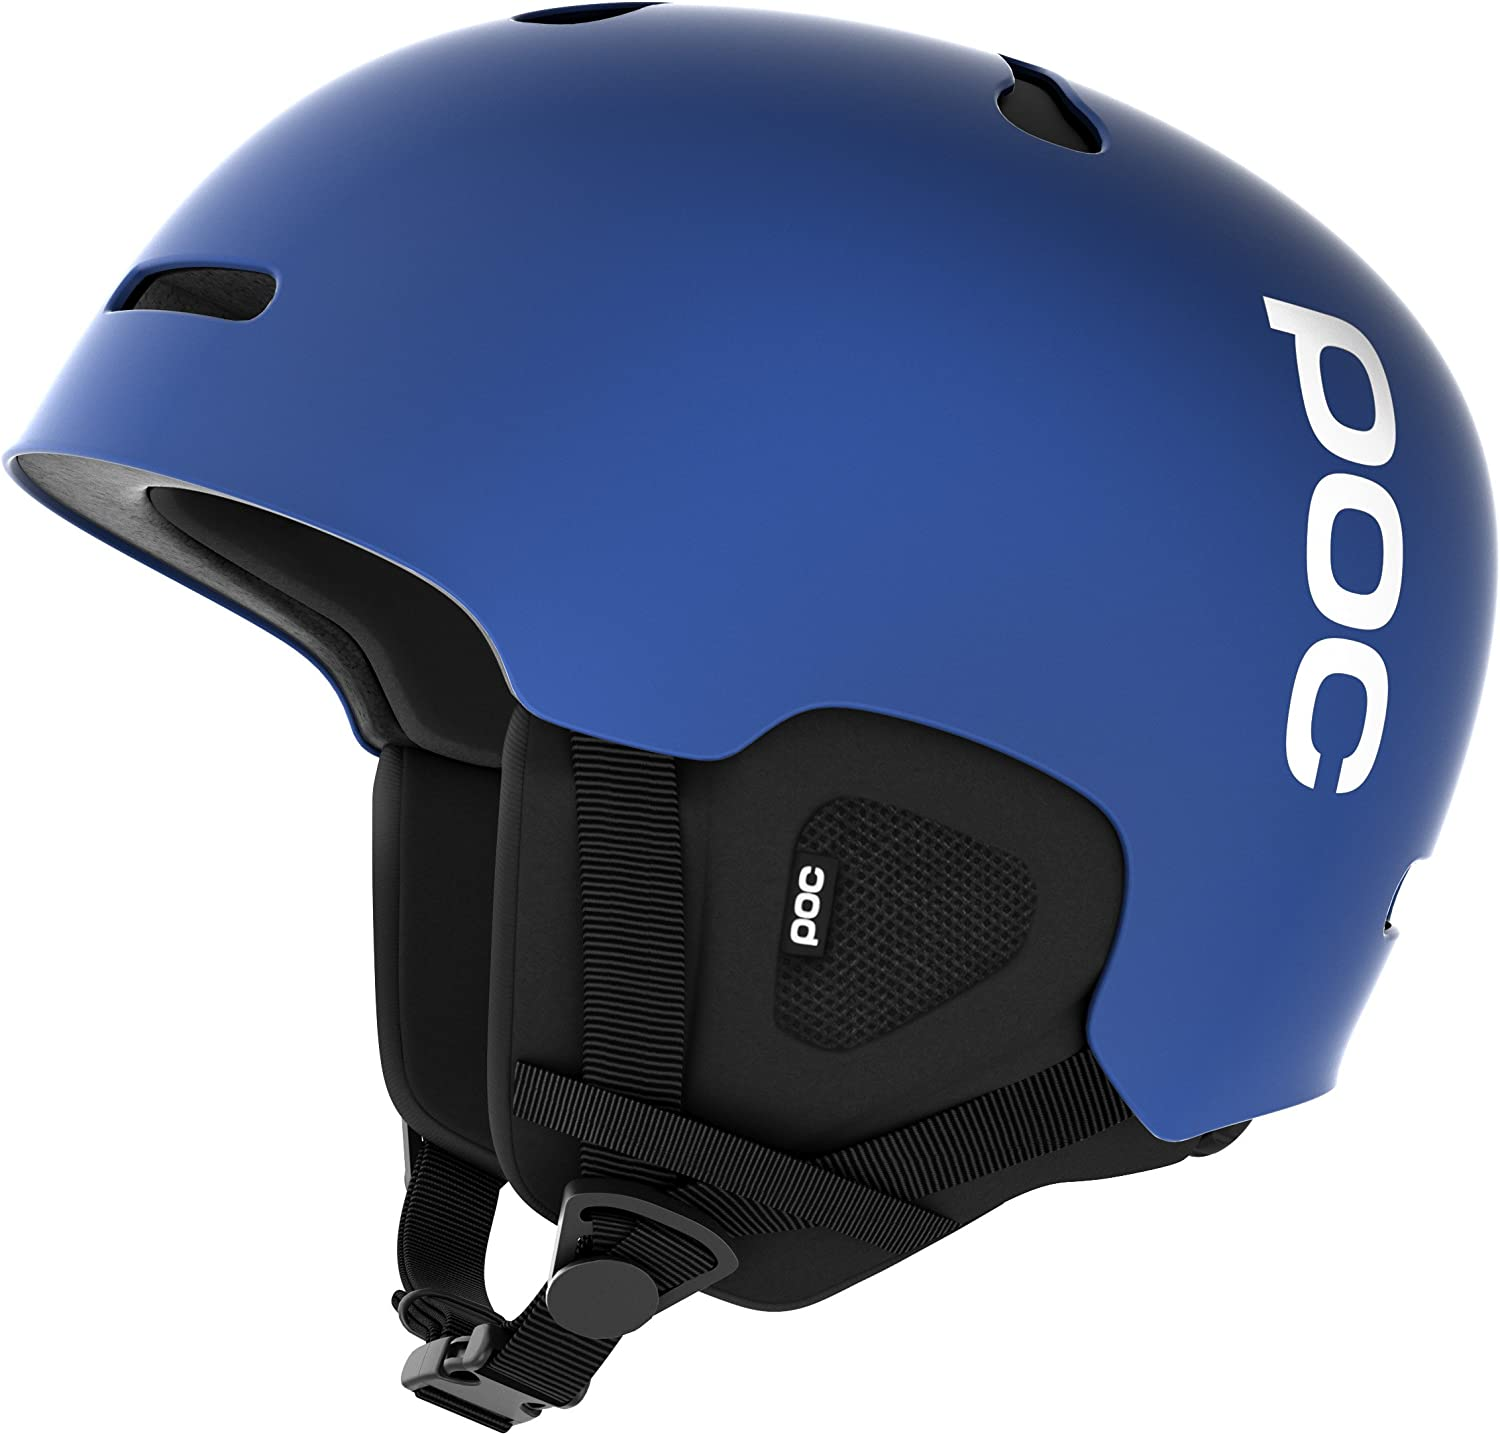 POCAuric Cut, Park and Pipe Riding Helmet